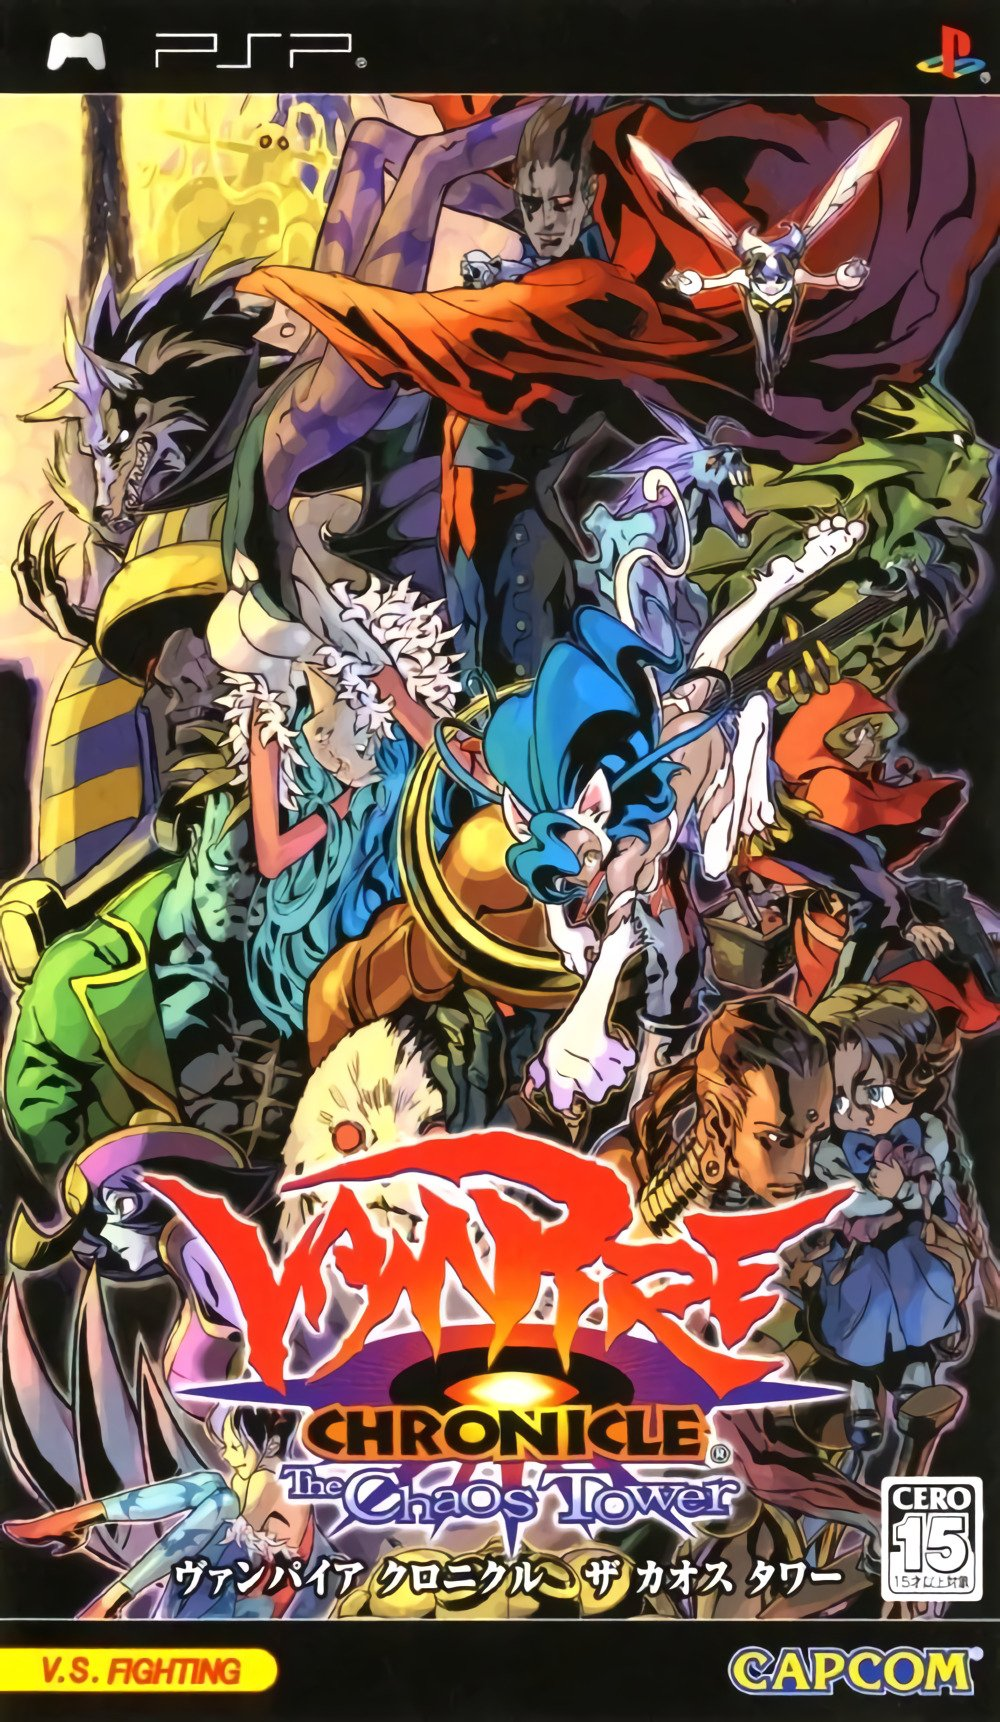 Vampire Chronicle: The Chaos Tower